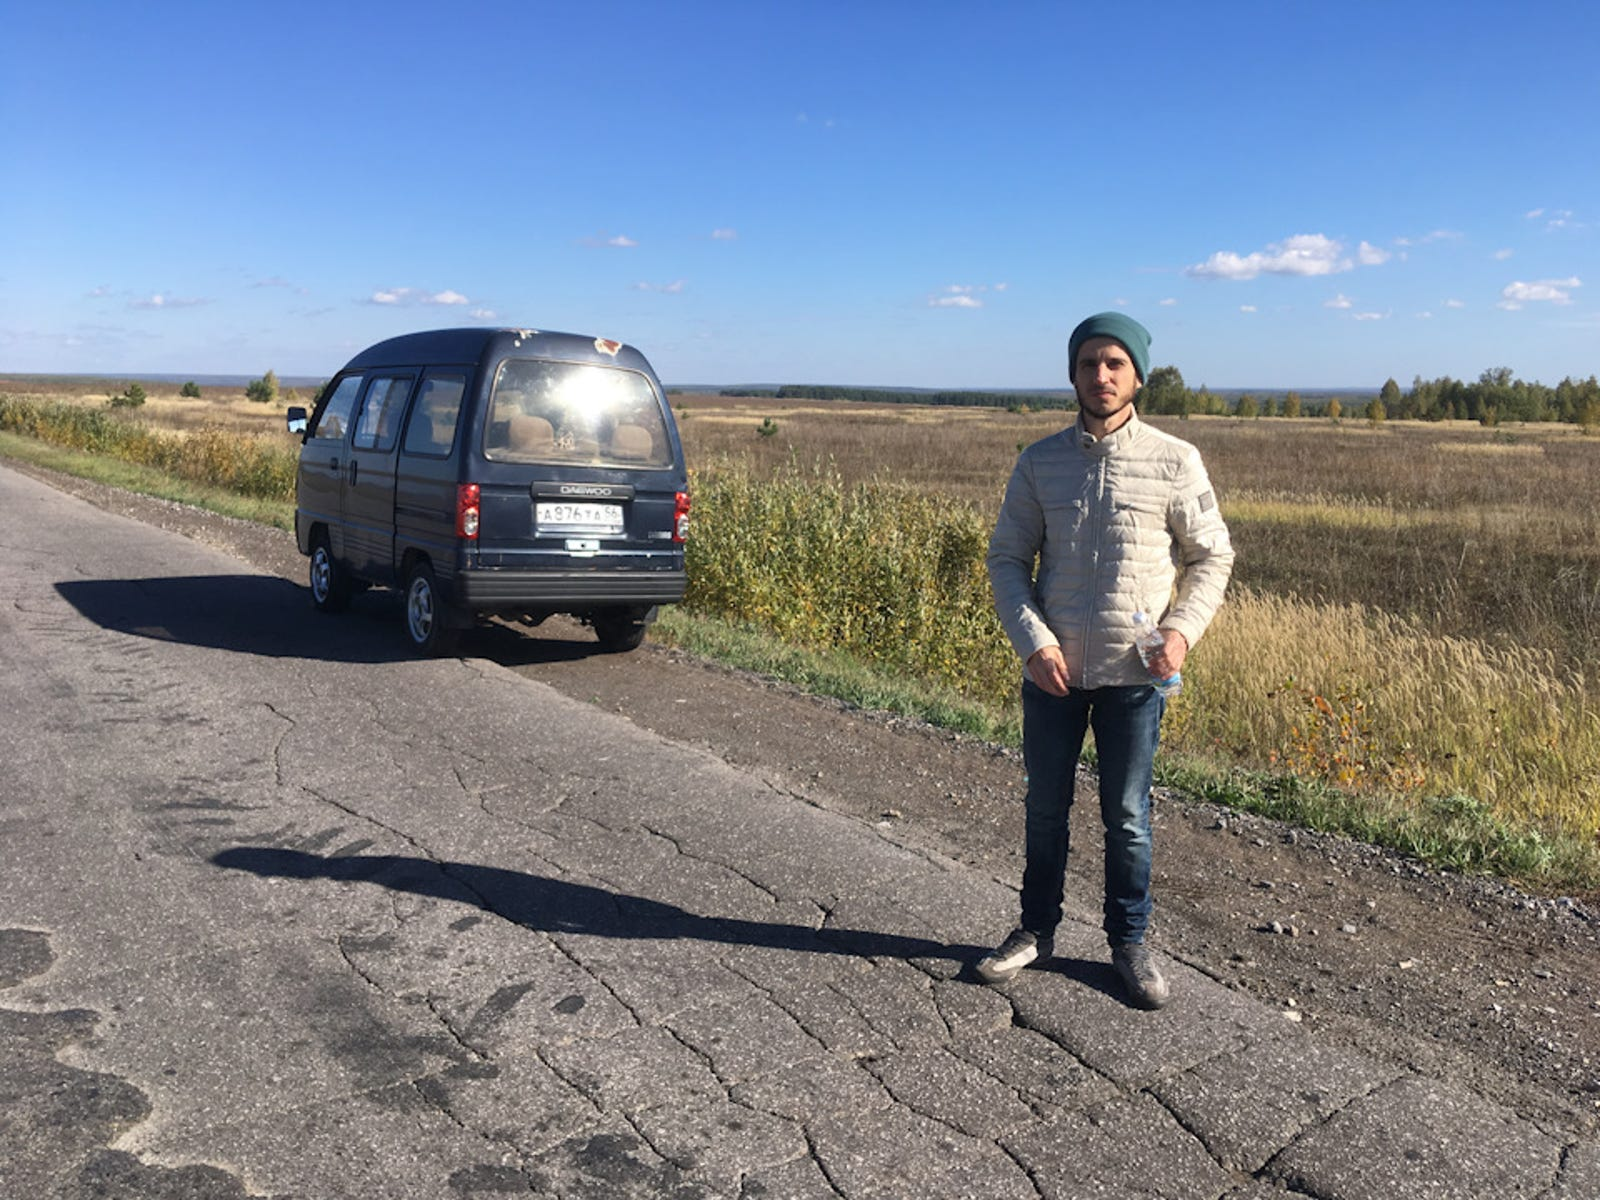 This is Nikolai, one of the hitchhikers Mitya picked up along the way. He gave Mitya a home-grown watermelon in return.